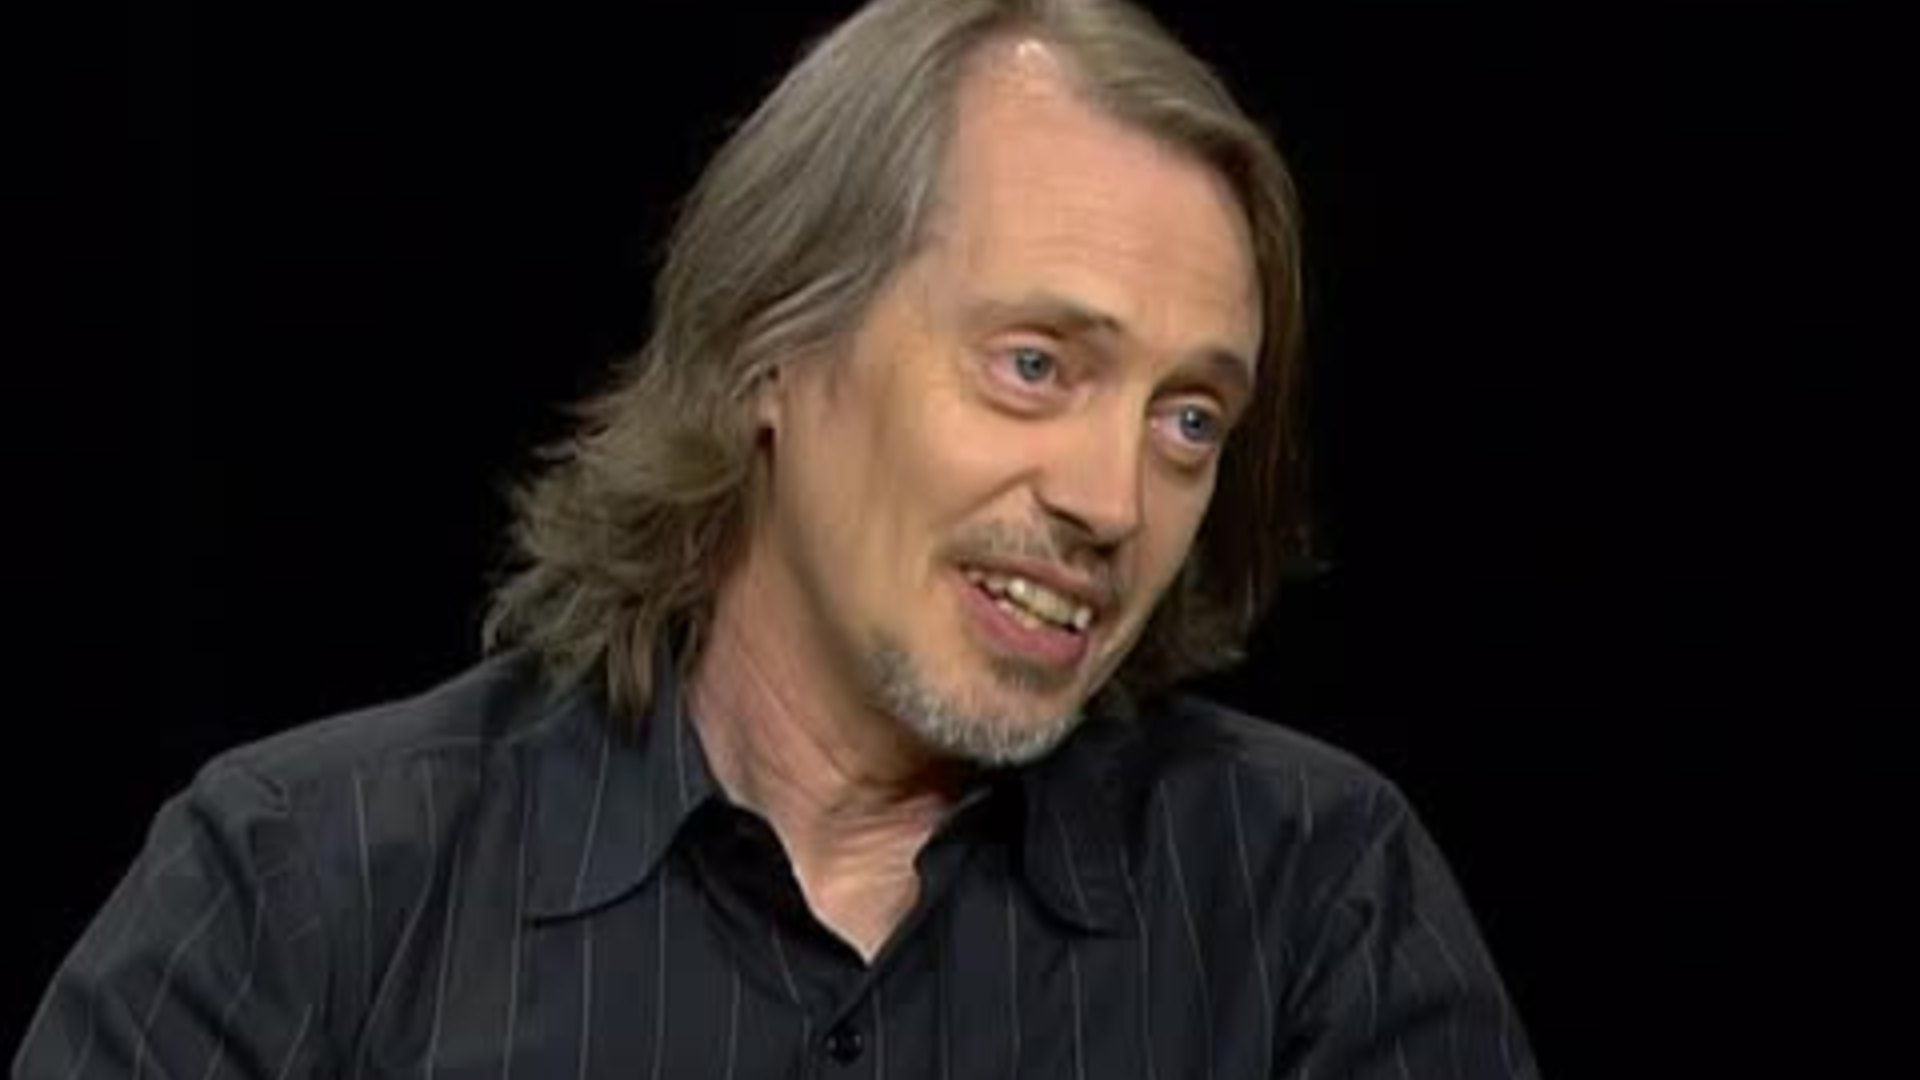 """Steve Buscemi Tired of Being """"Just Another Pretty Face,"""" Ready to"""